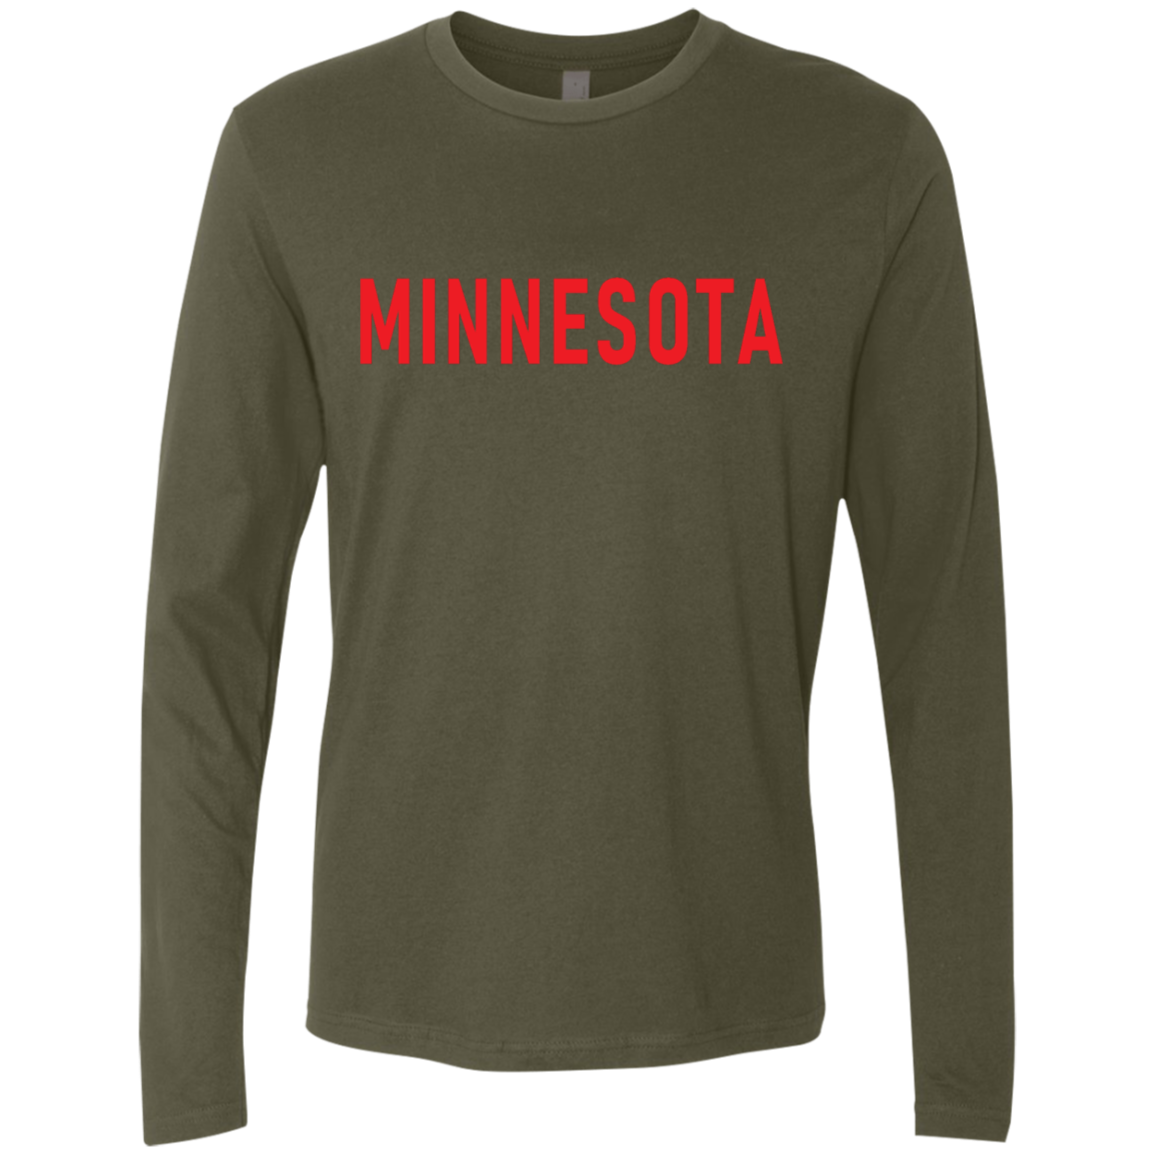 Minnesota Red Font Men's Long Sleeve Tee